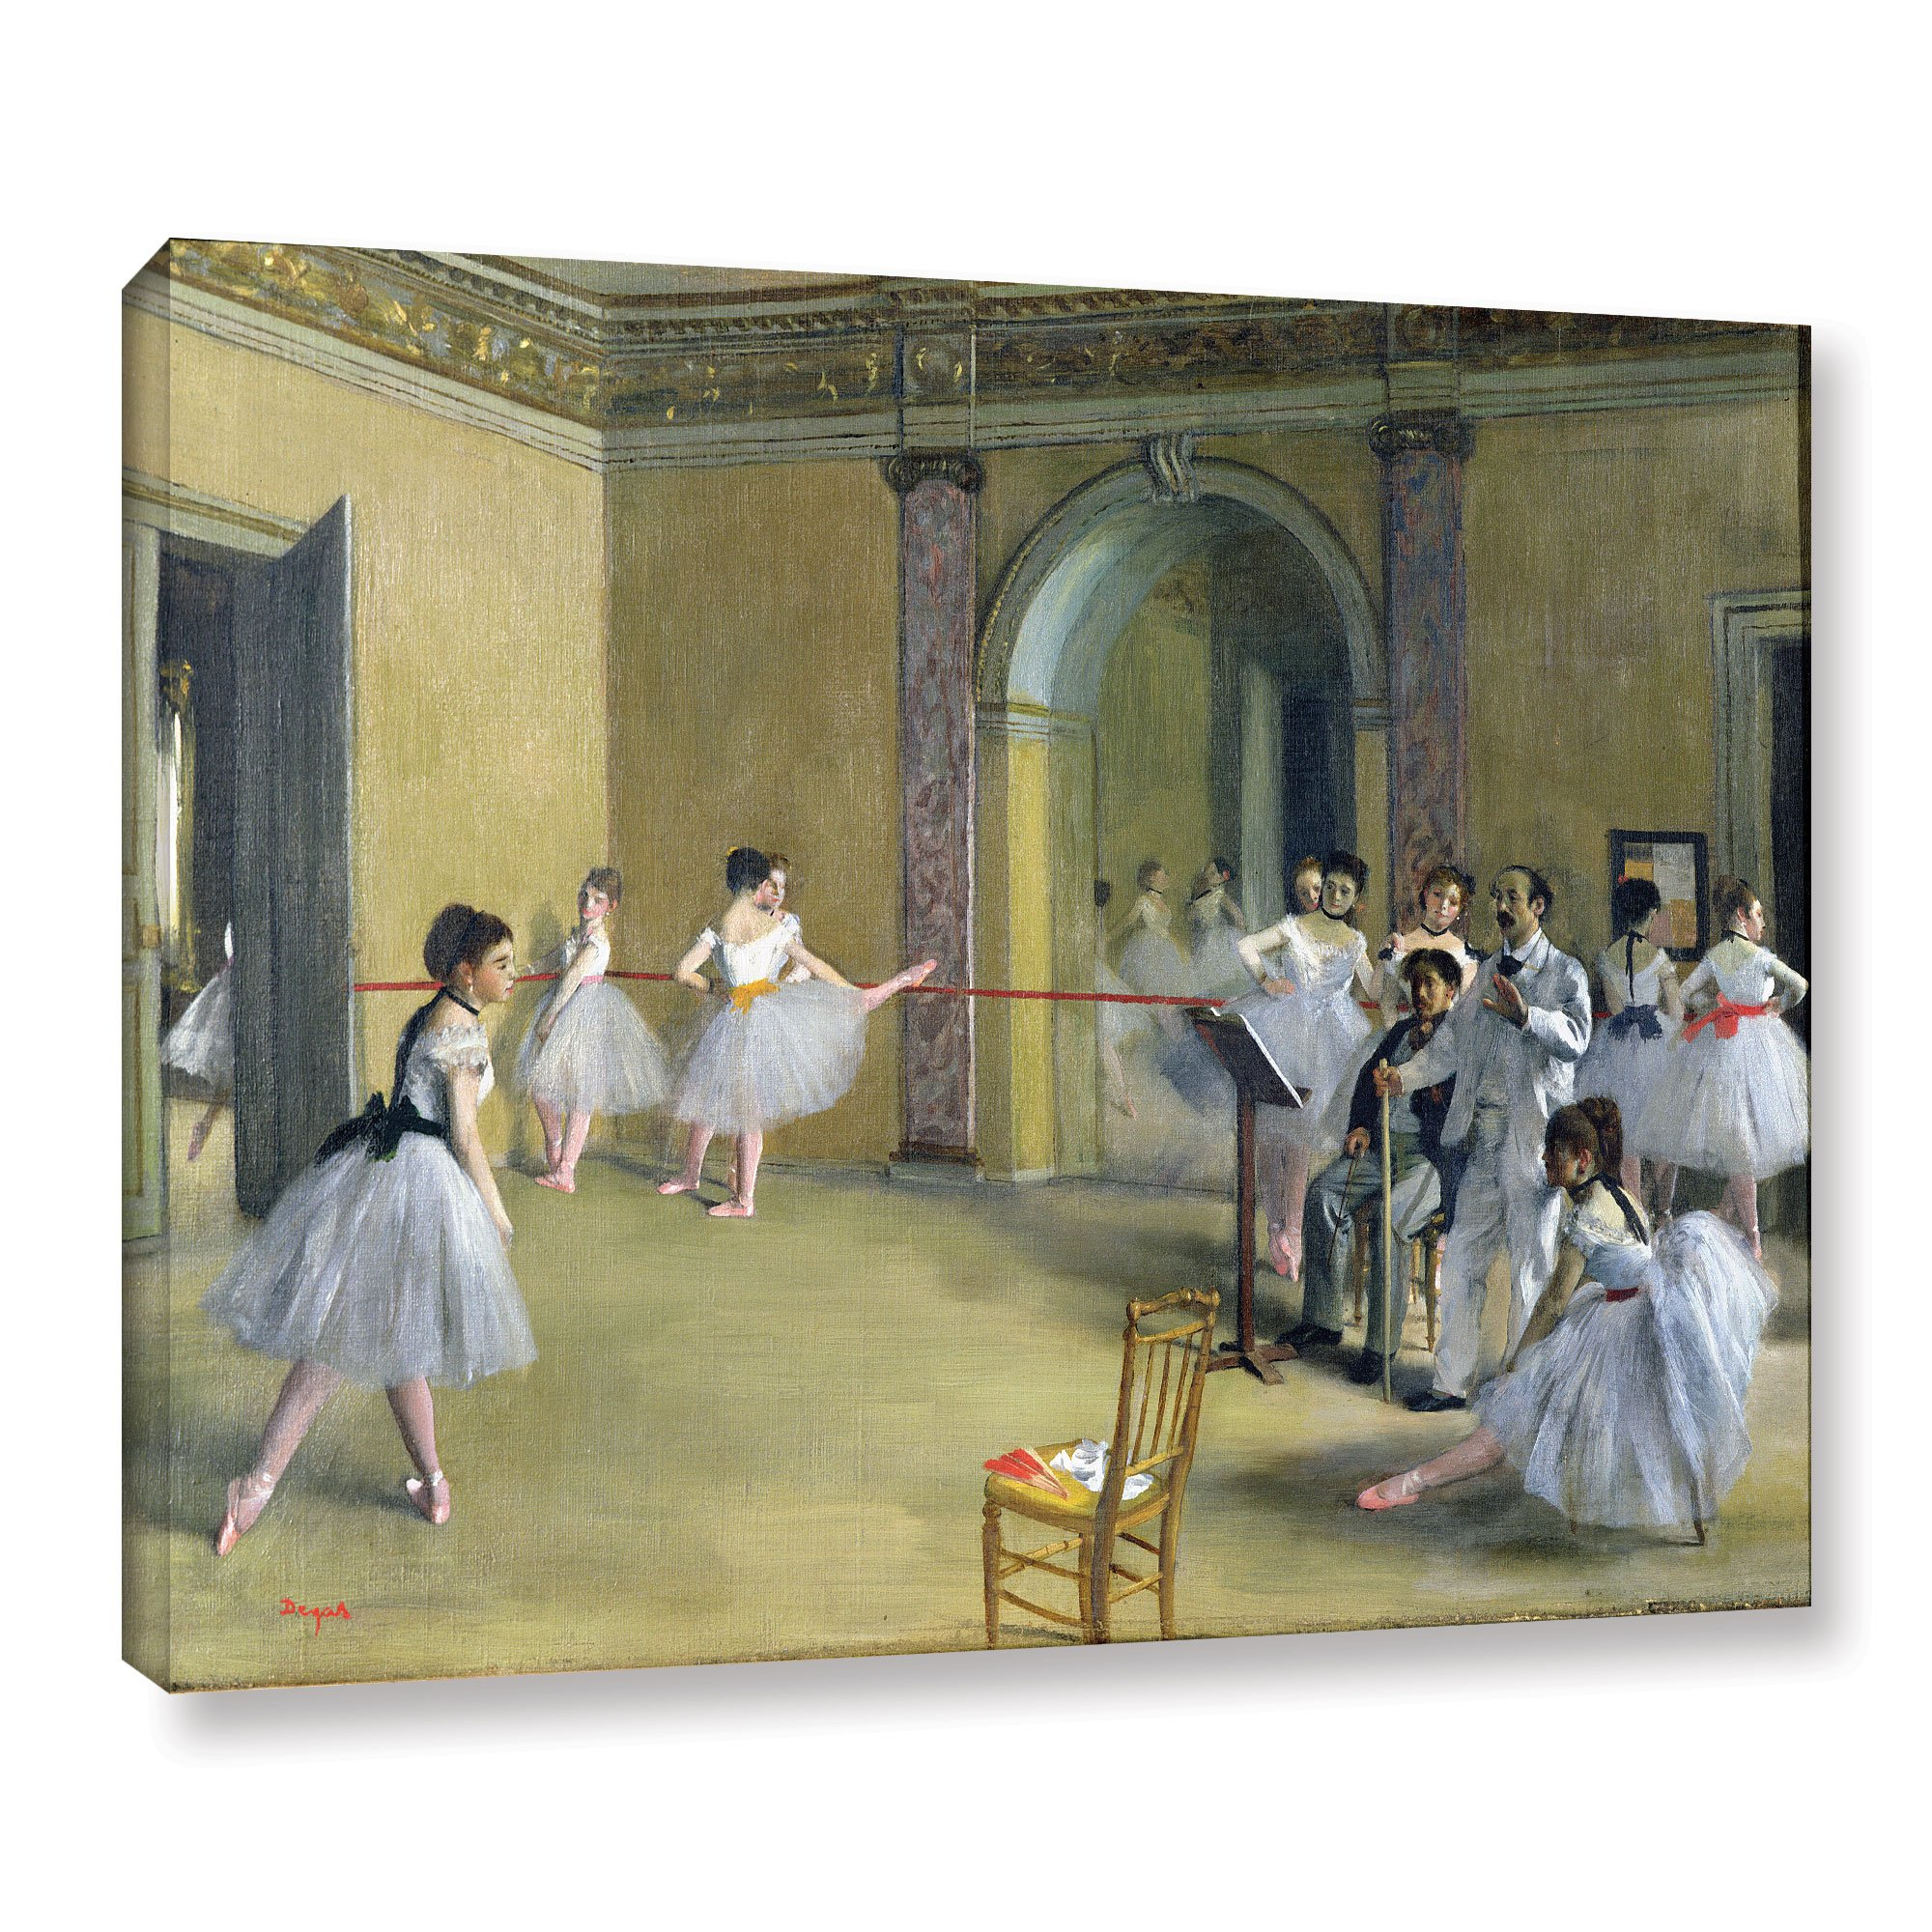 ArtWall Edgar Degas's The Dance Foyer at The Opera on The Rue Le Peletier Gallery-Wrapped Canvas, 36 x 48